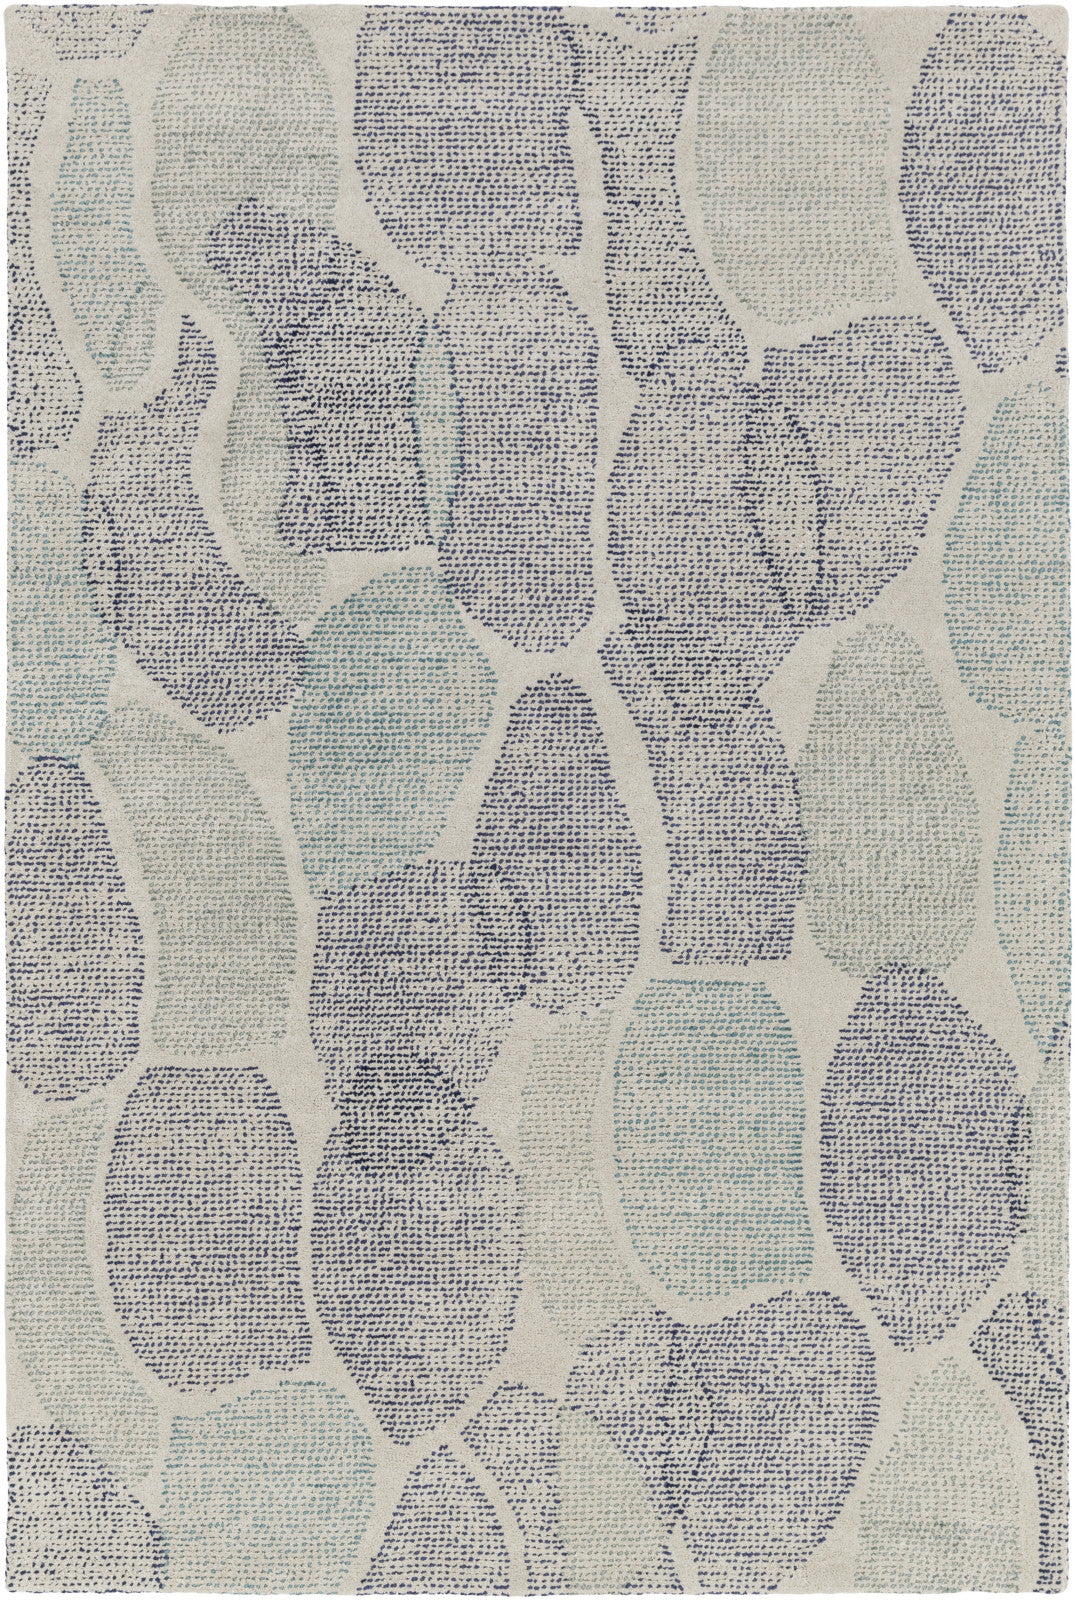 Melody MDY-2008 Gray Area Rug by Surya